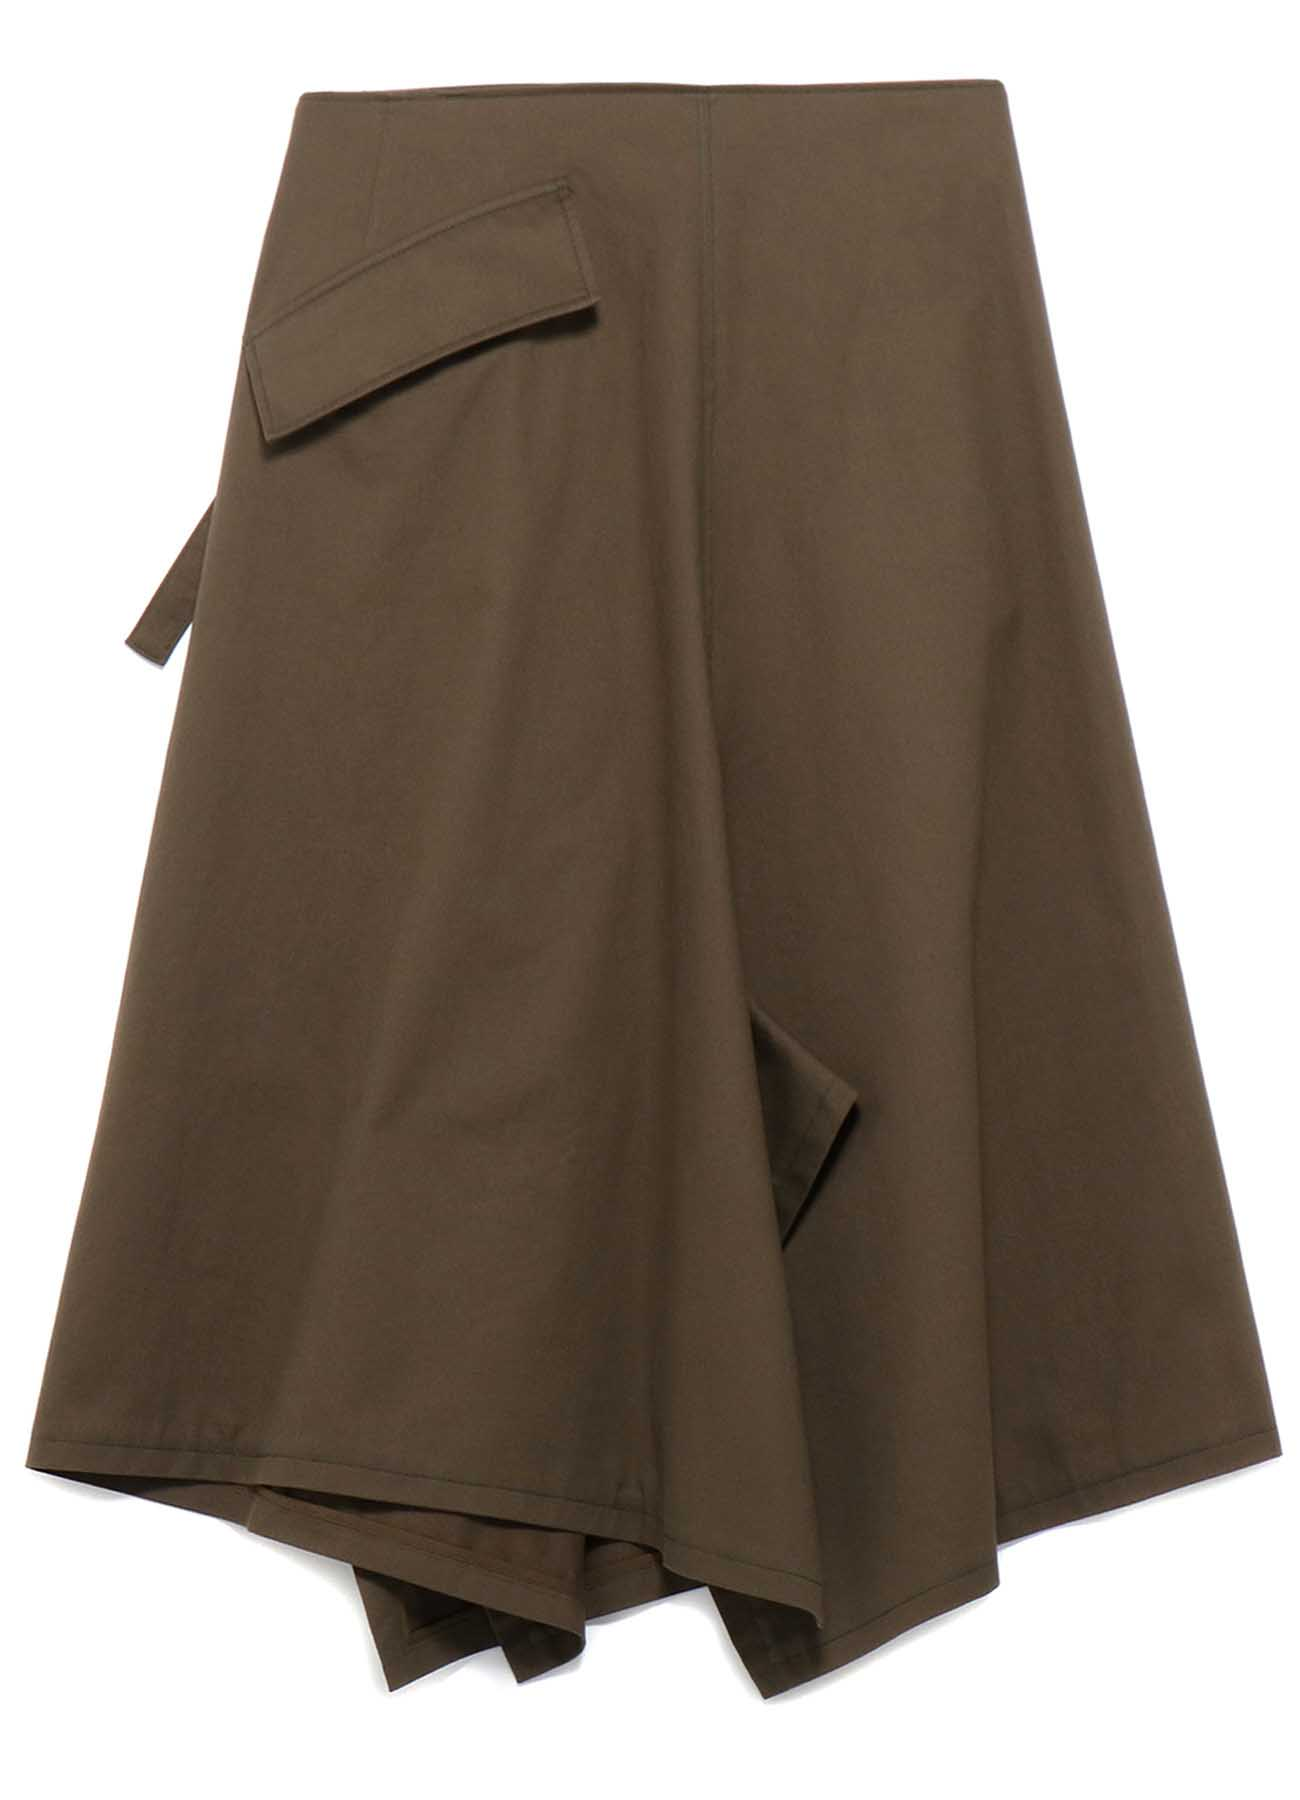 SOFT CHINO CLOTH ASYMMETRICAL LEFT BELT SKIRT